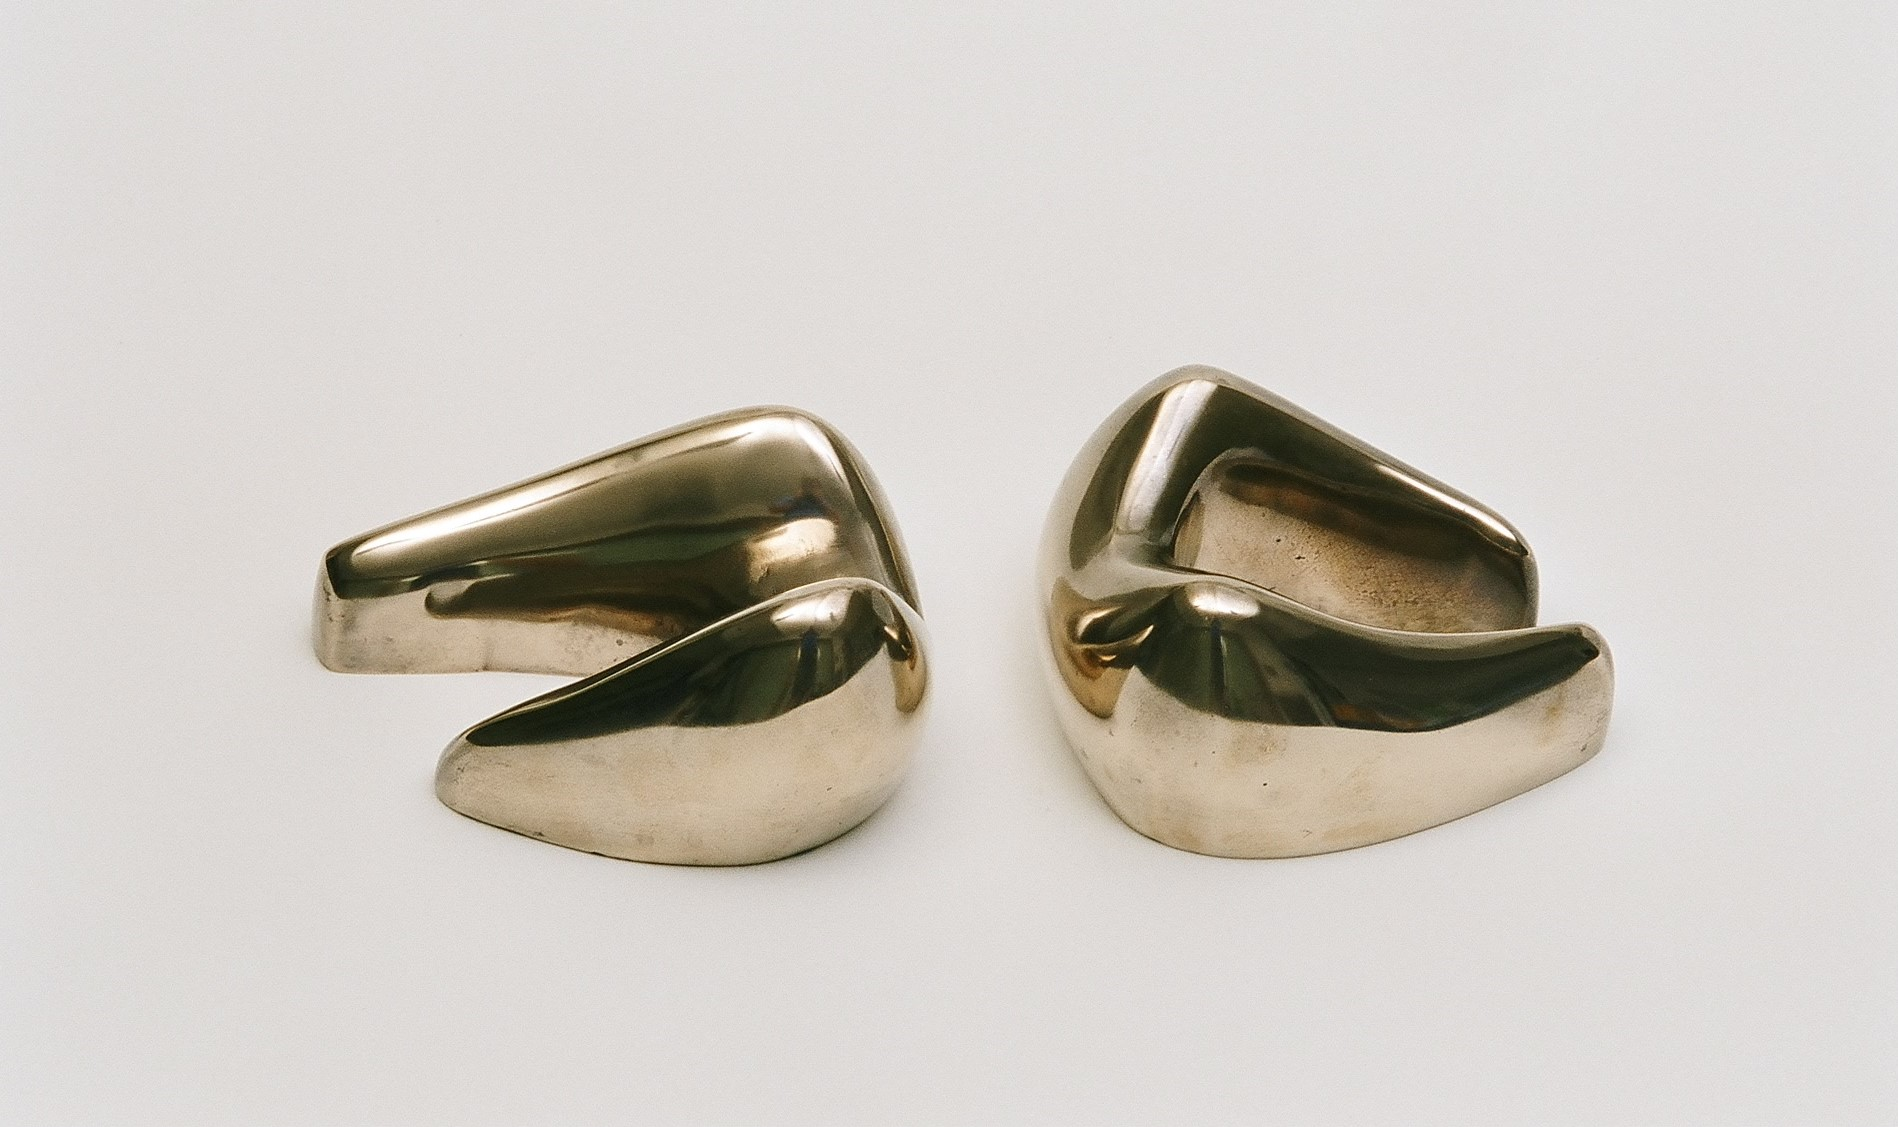 Two-piece reclining figure 31x17x10 cm. [polished bronze]